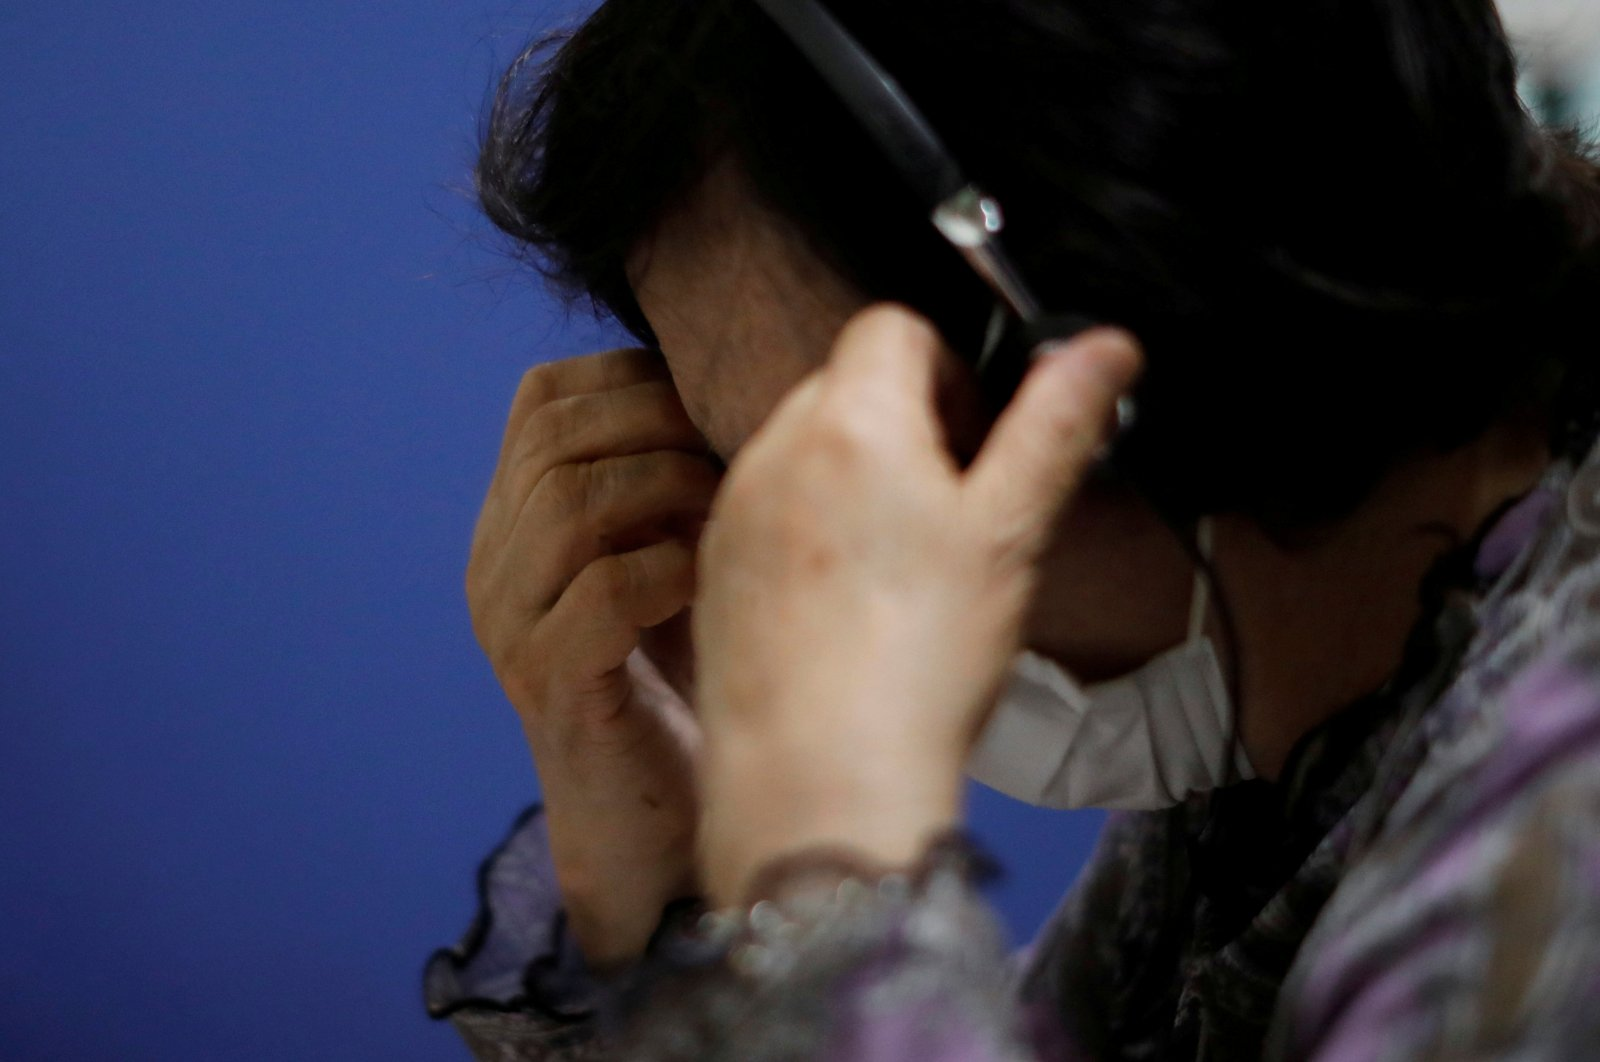 A volunteer responds to an incoming call at the Tokyo Befrienders call center, Tokyo's suicide hotline center, during the spread of the coronavirus disease, in Tokyo, Japan, May 26, 2020. (Reuters Photo)